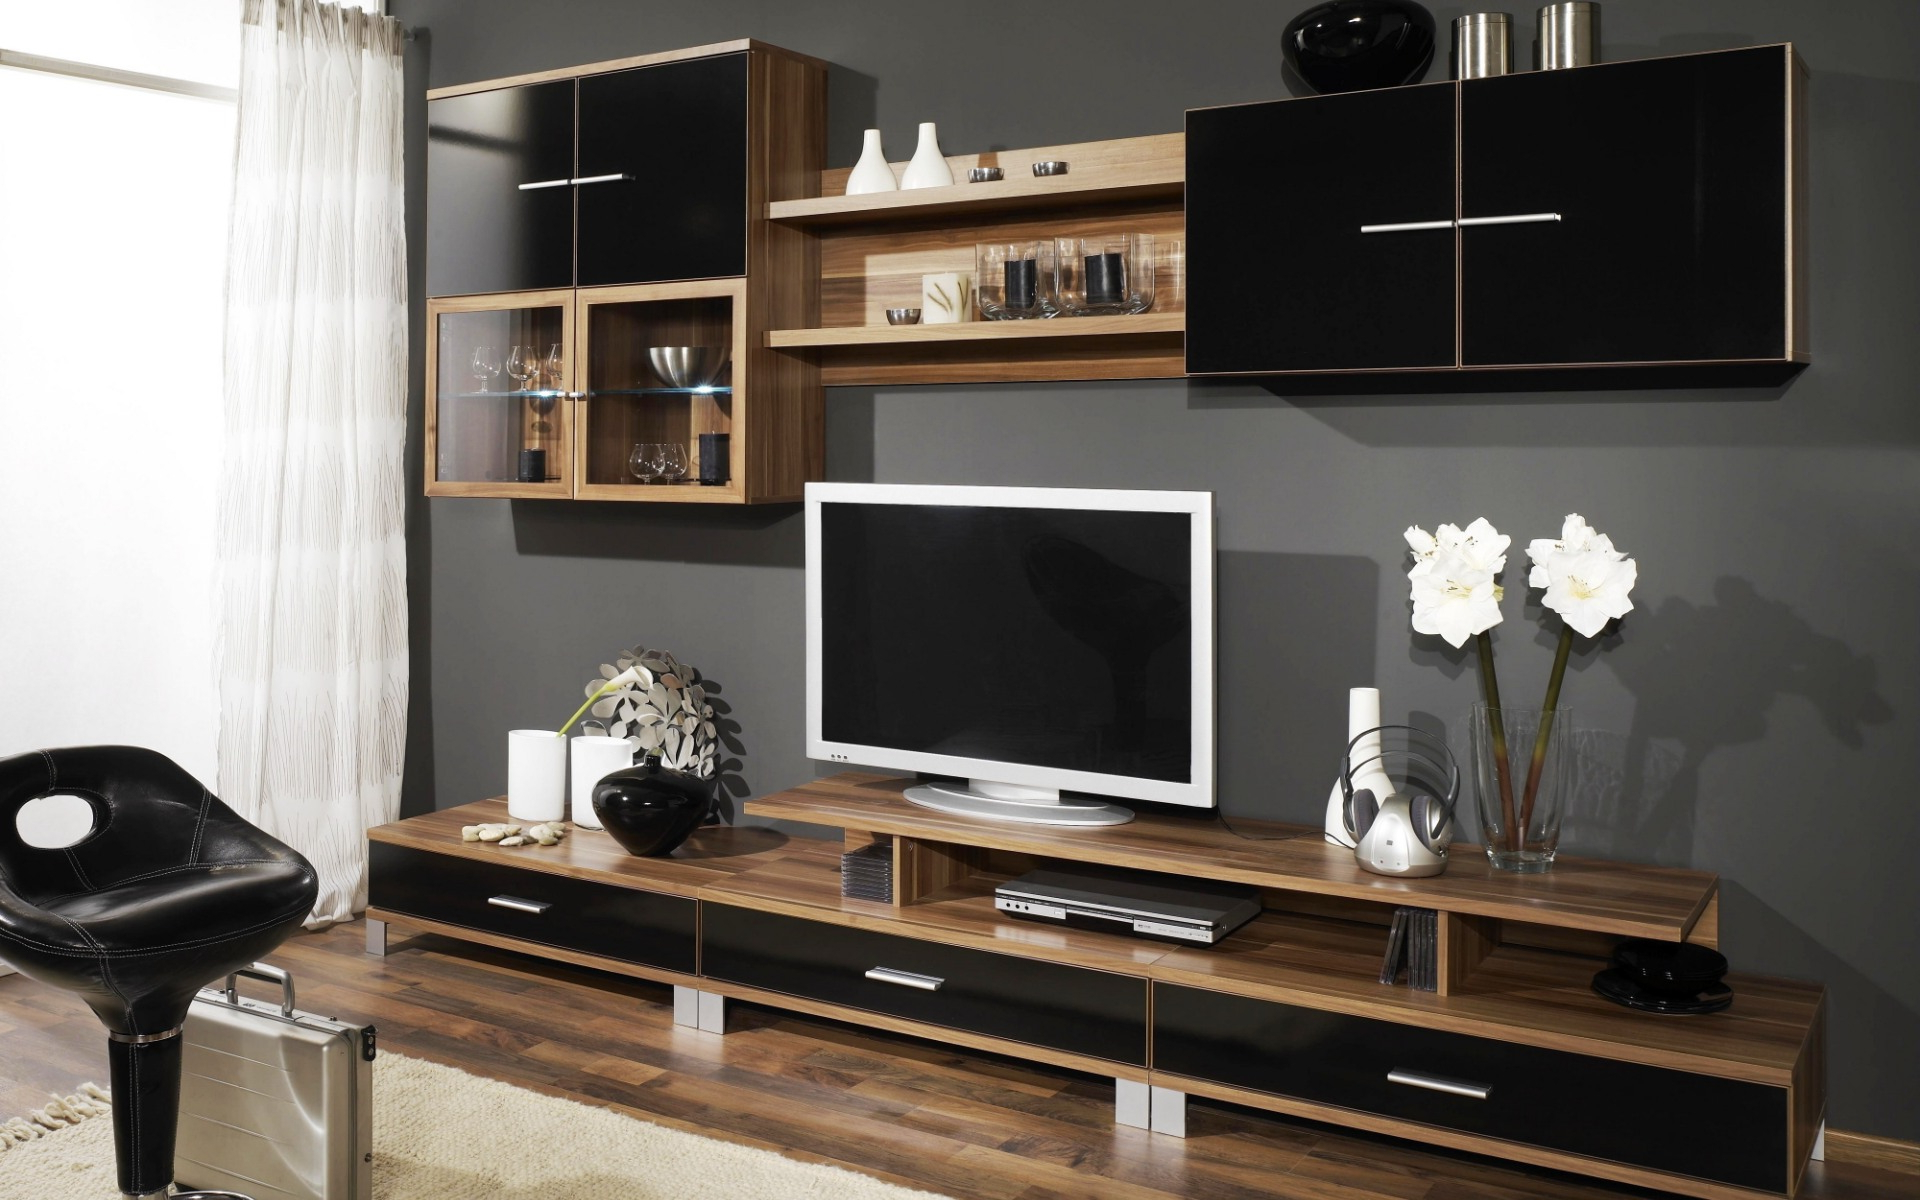 Cool Tv Stands With Regard To Best And Newest Tv Cabinet With Doors And Drawers Cool Stands Modern Stand Design (View 10 of 20)